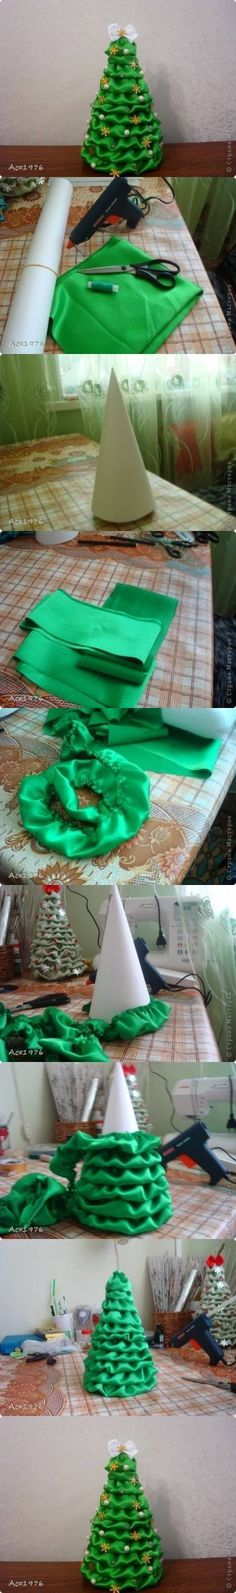 Fabric ruffle applied to styrofoam cone